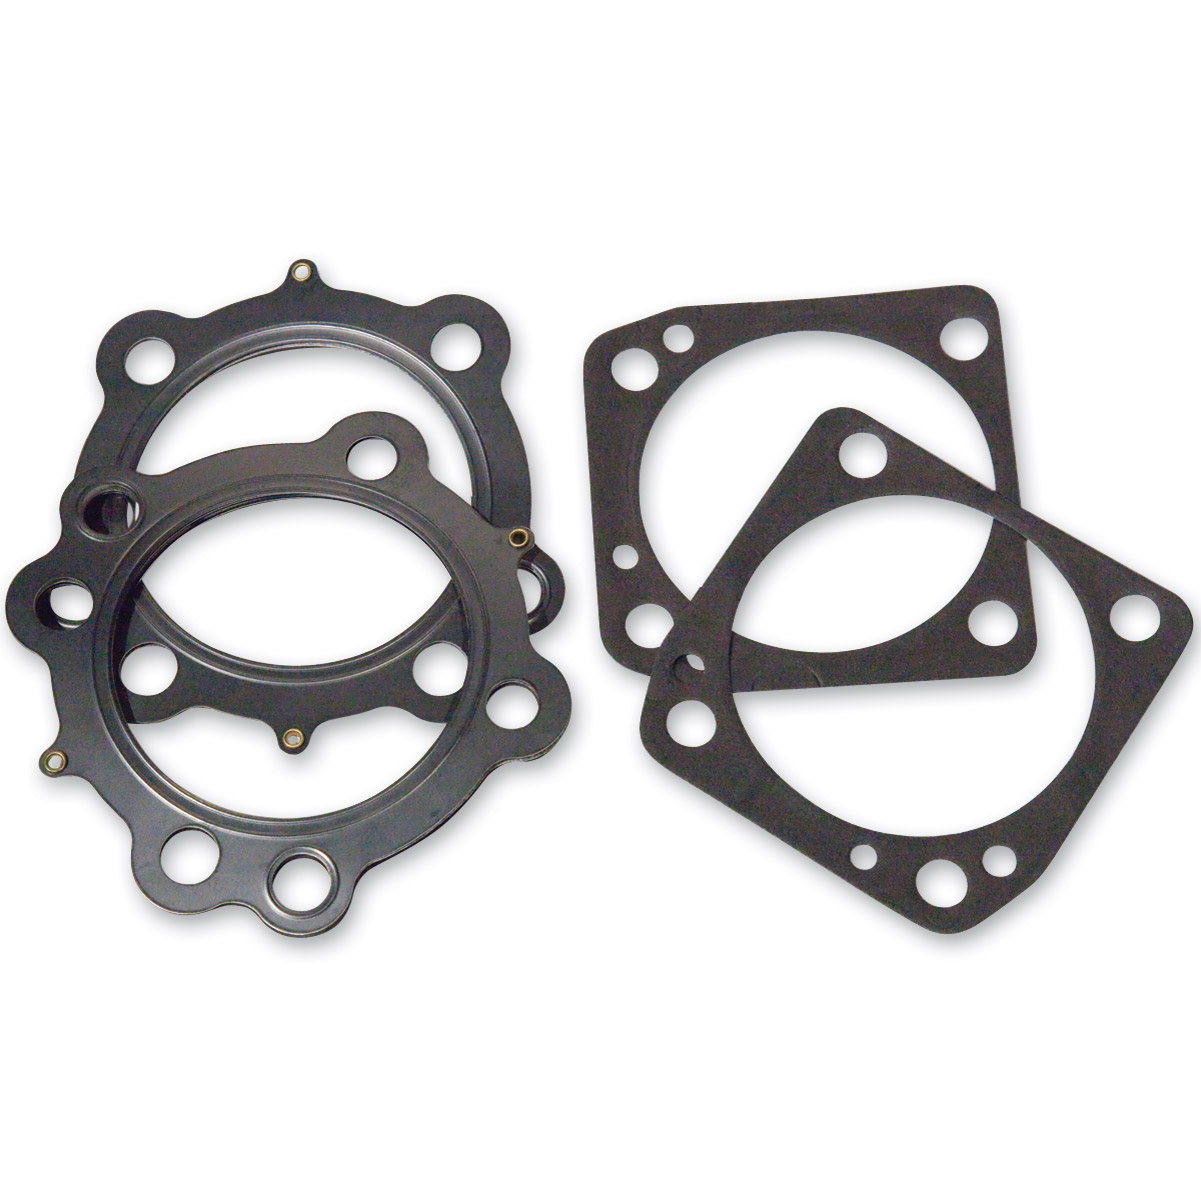 Revolution Performance Monster Big Bore Replacement Head and Base Gasket Kit